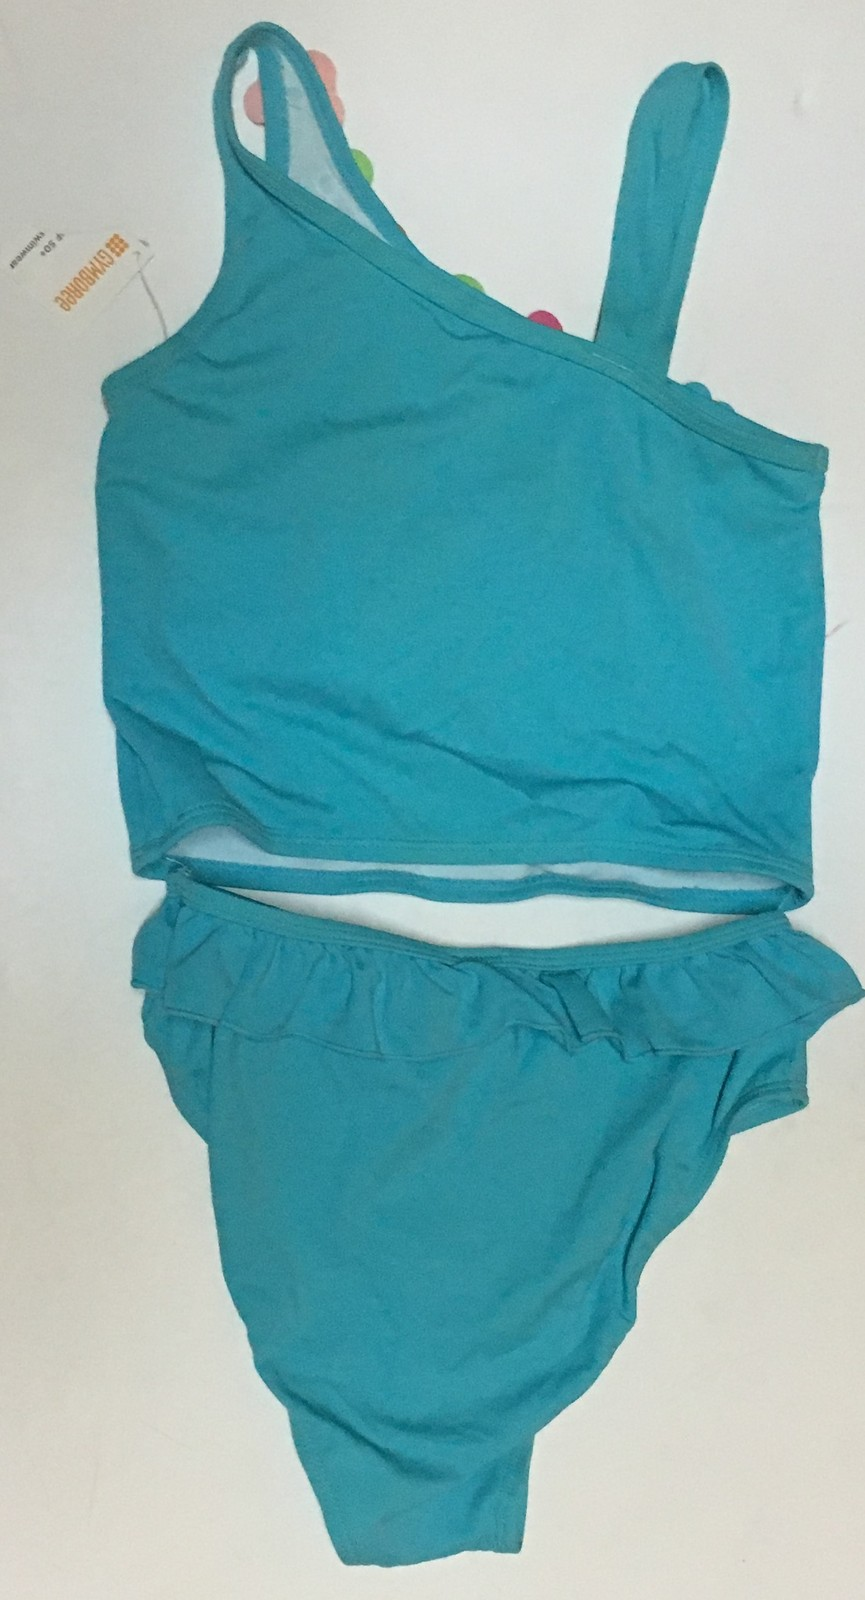 Youth Two Piece Swimwear Swimsuit Sz 12 Blue Floral SPF 50+ image 5